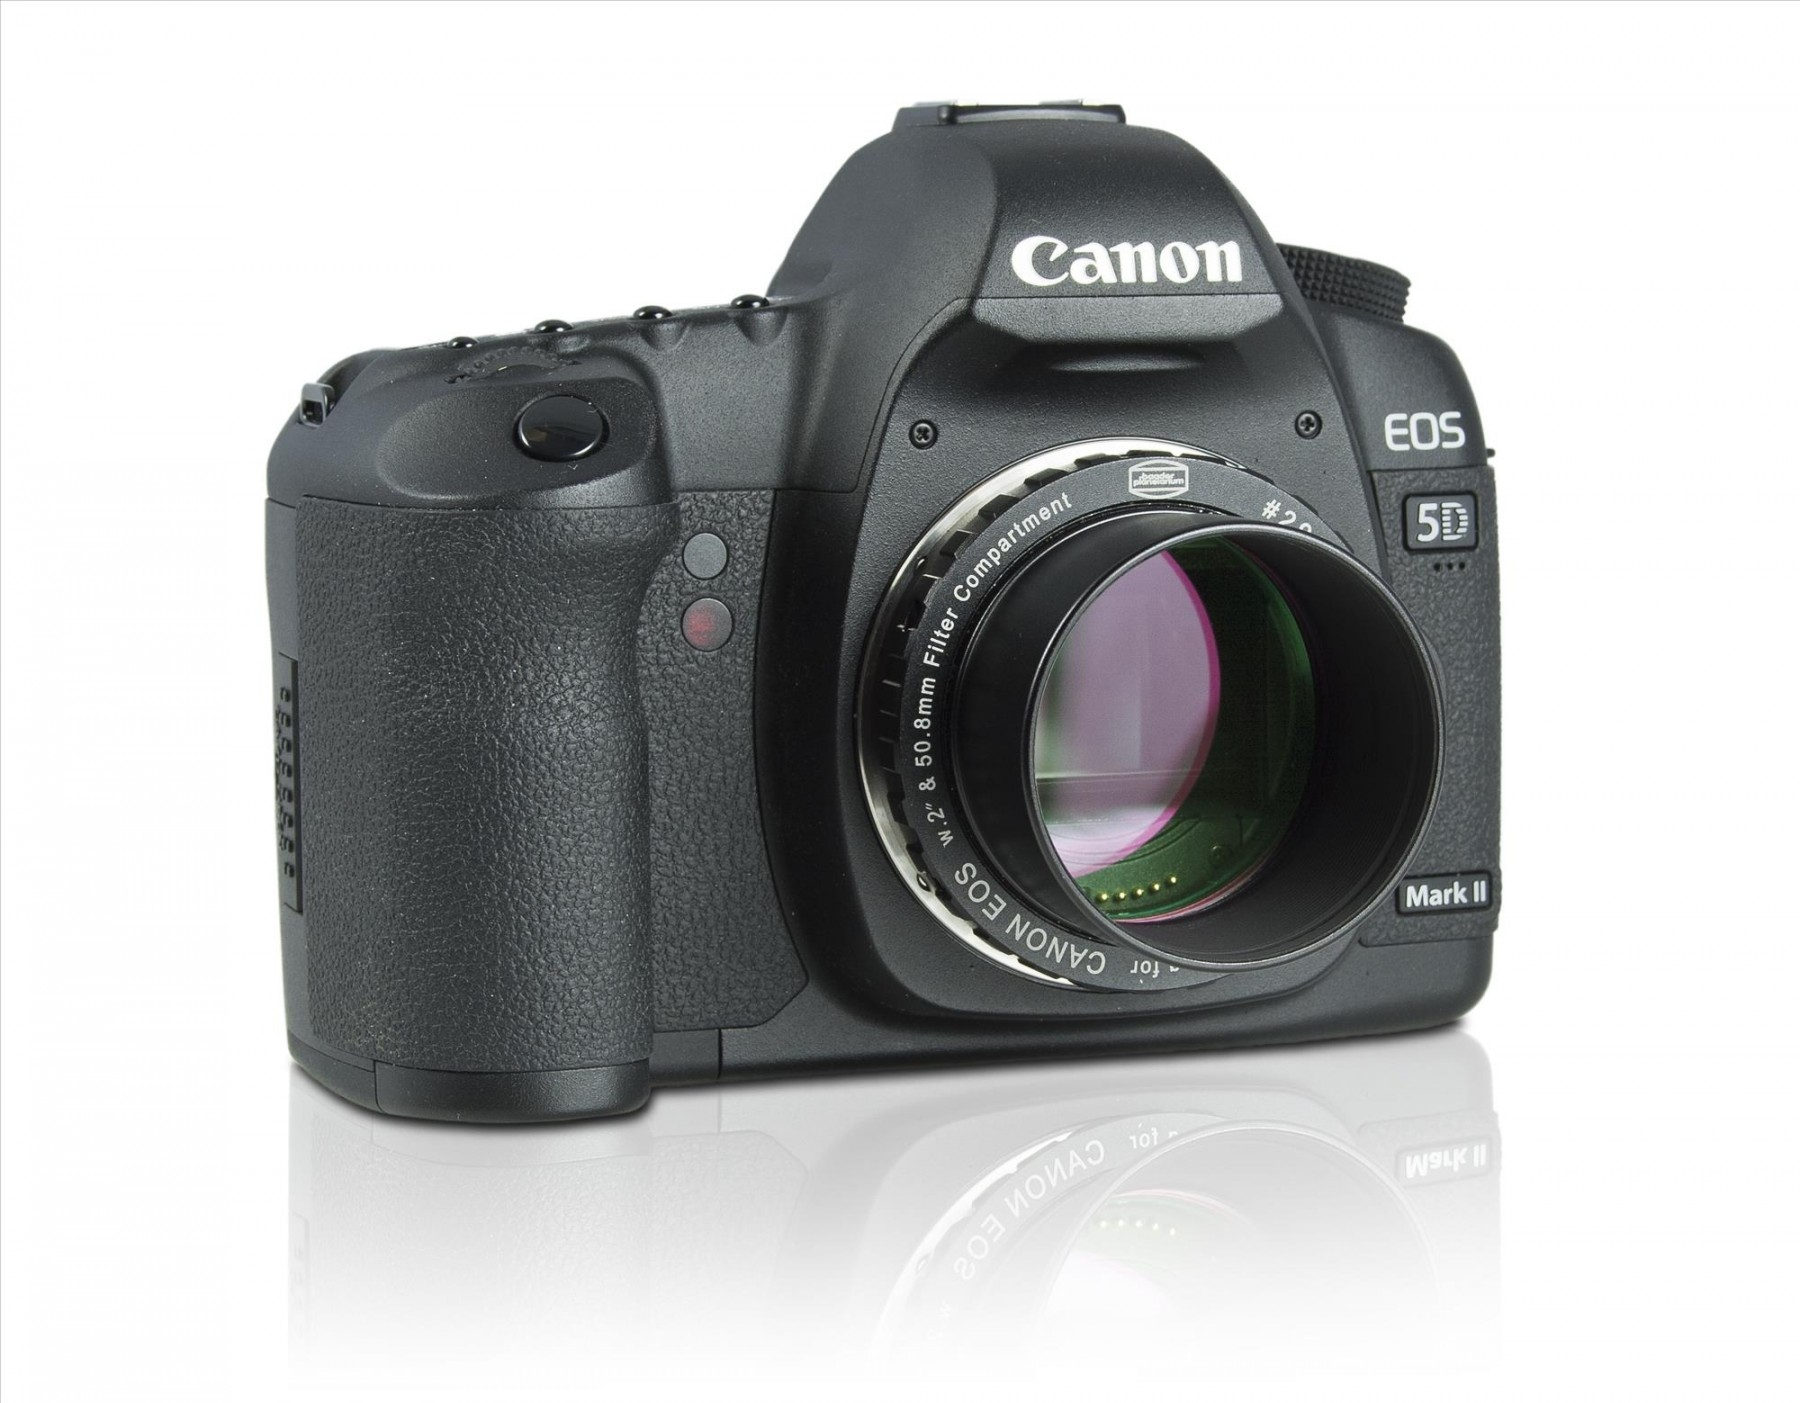 Canon EOS Protective T-Ring with additional filter and barrel. Camera not included